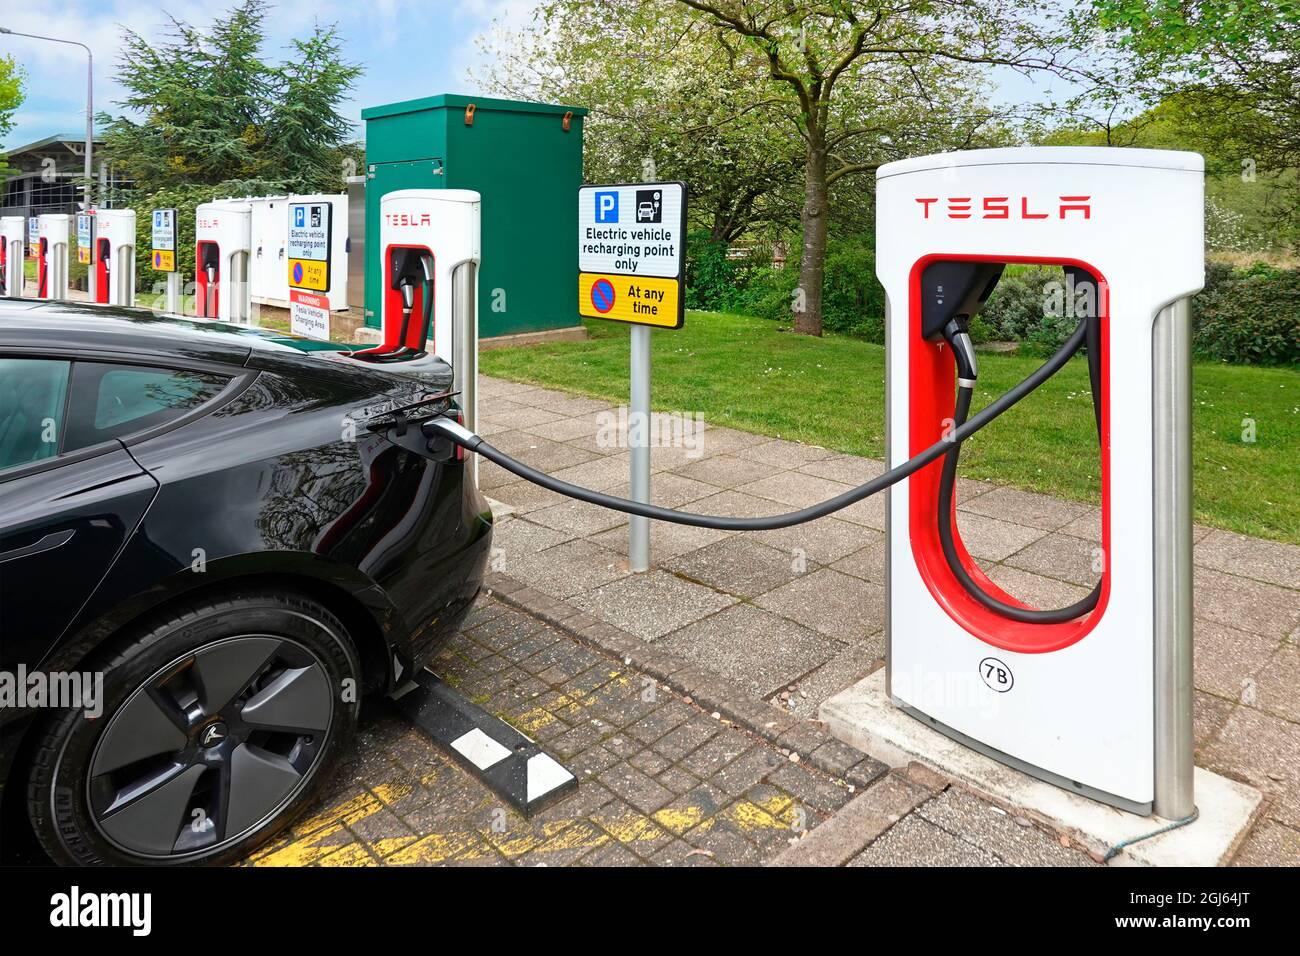 Climate change friendly electric cars charging at row of Tesla car parking bays at Welcome Break facility M42 motorway service station Birmingham UK Stock Photo